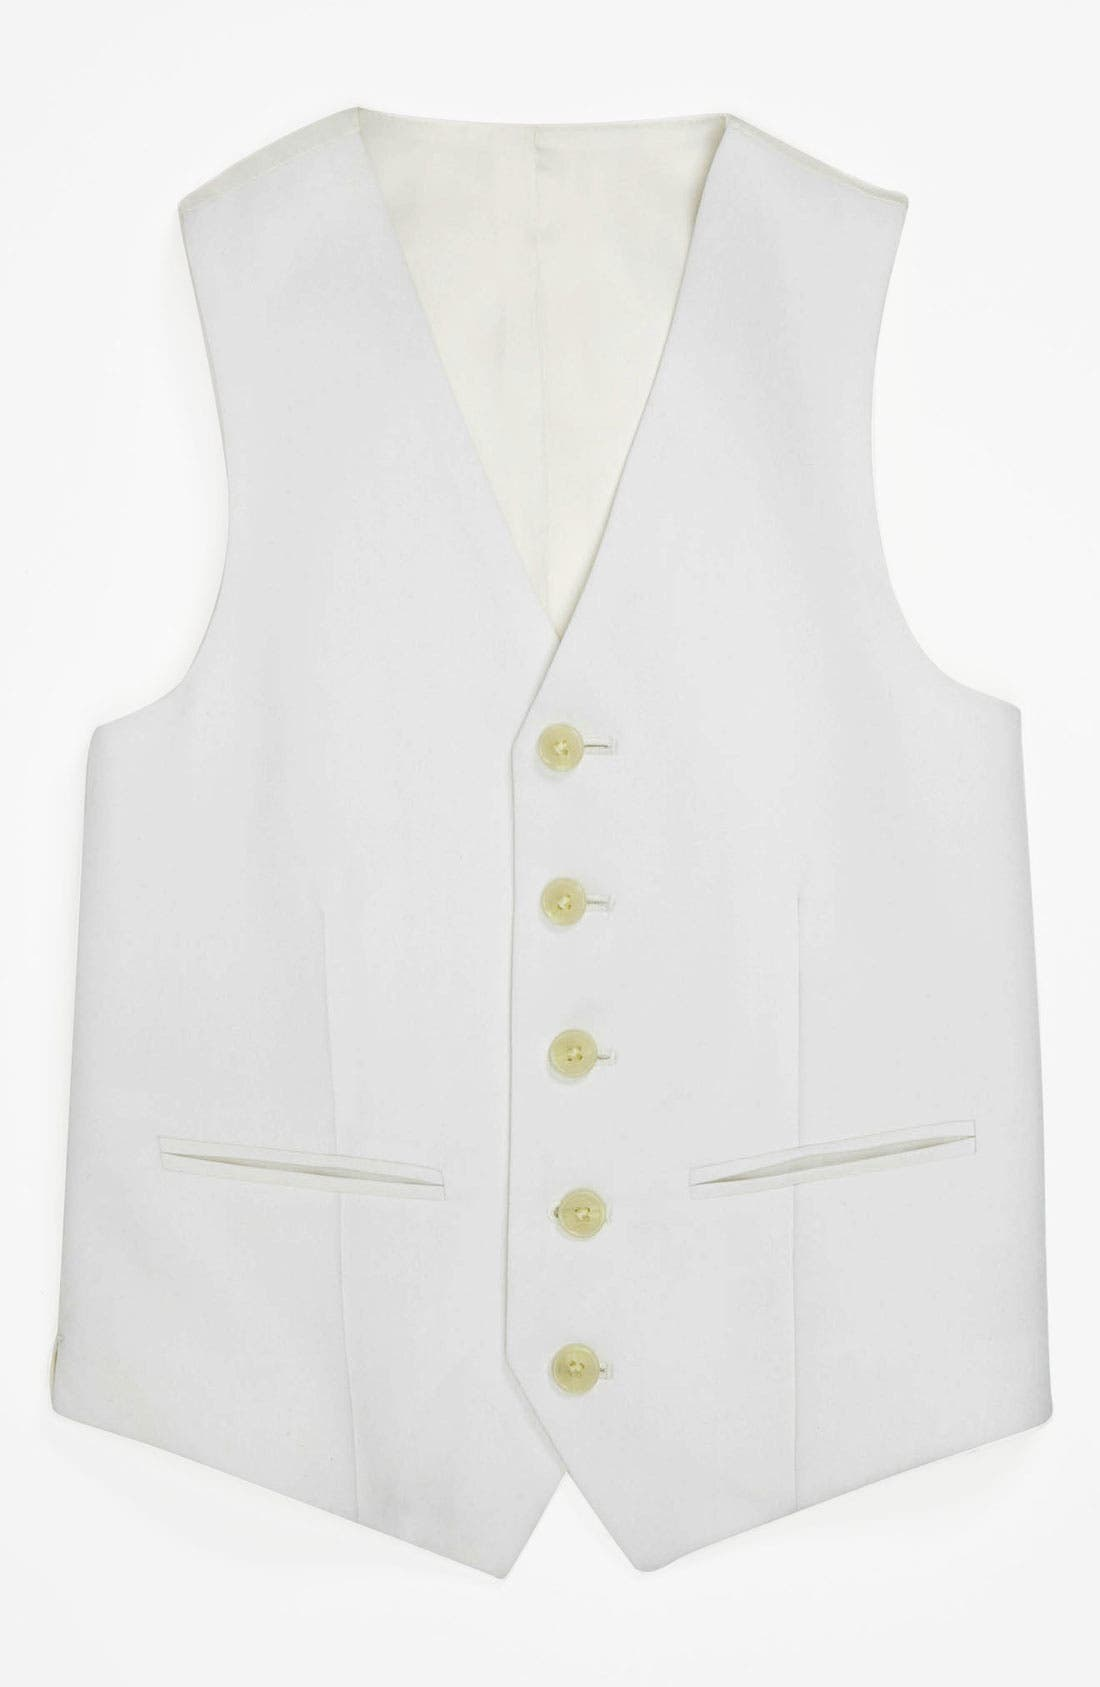 Main Image - Joseph Abboud Vest (Little Boys & Big Boys)